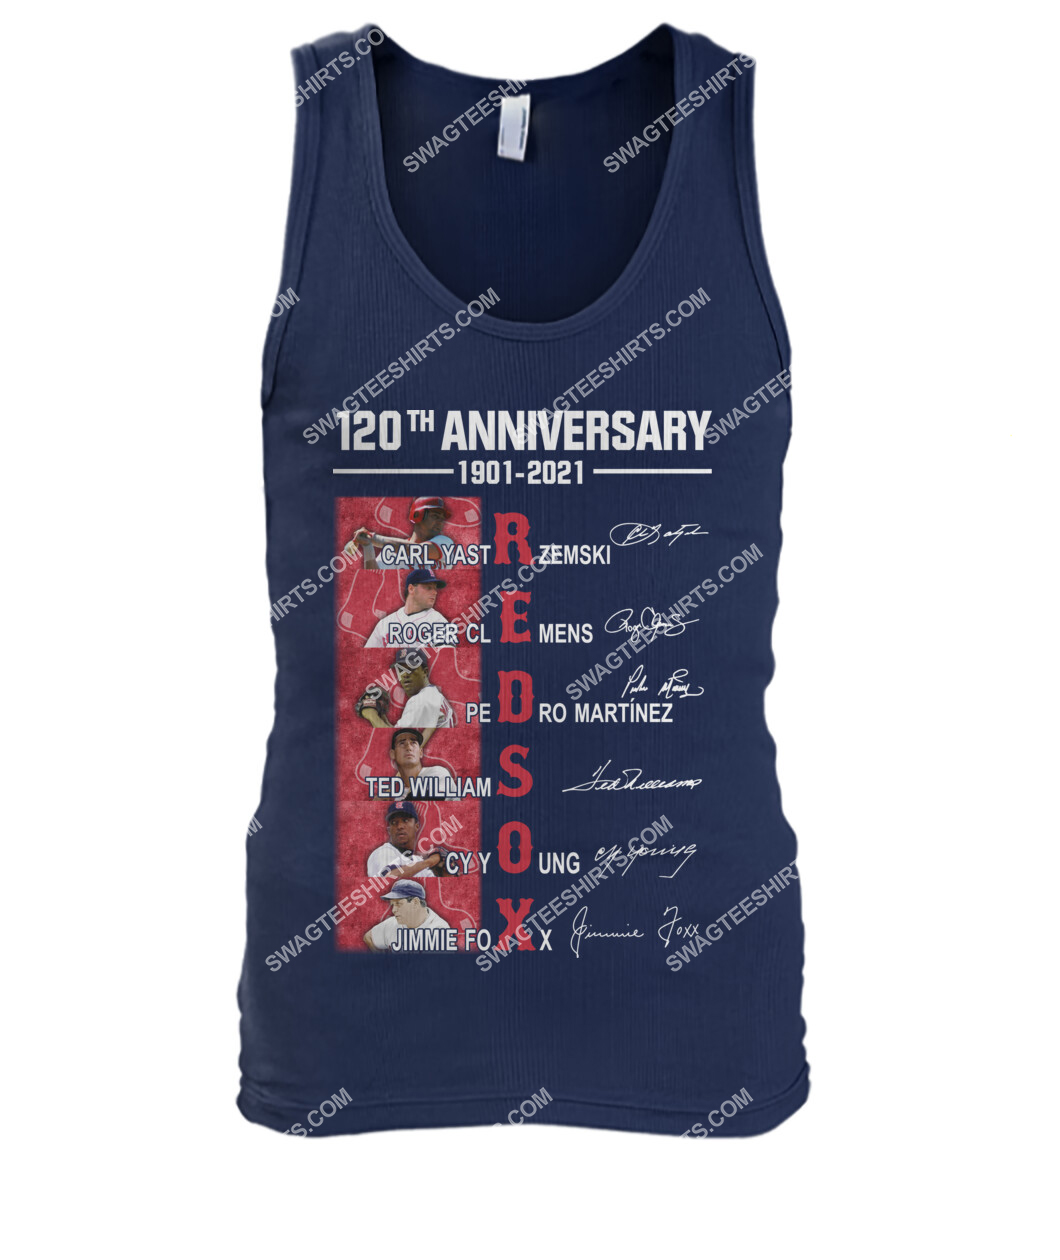 the boston red sox 120th anniversary 1901 2021 signatures mlb tank top 1